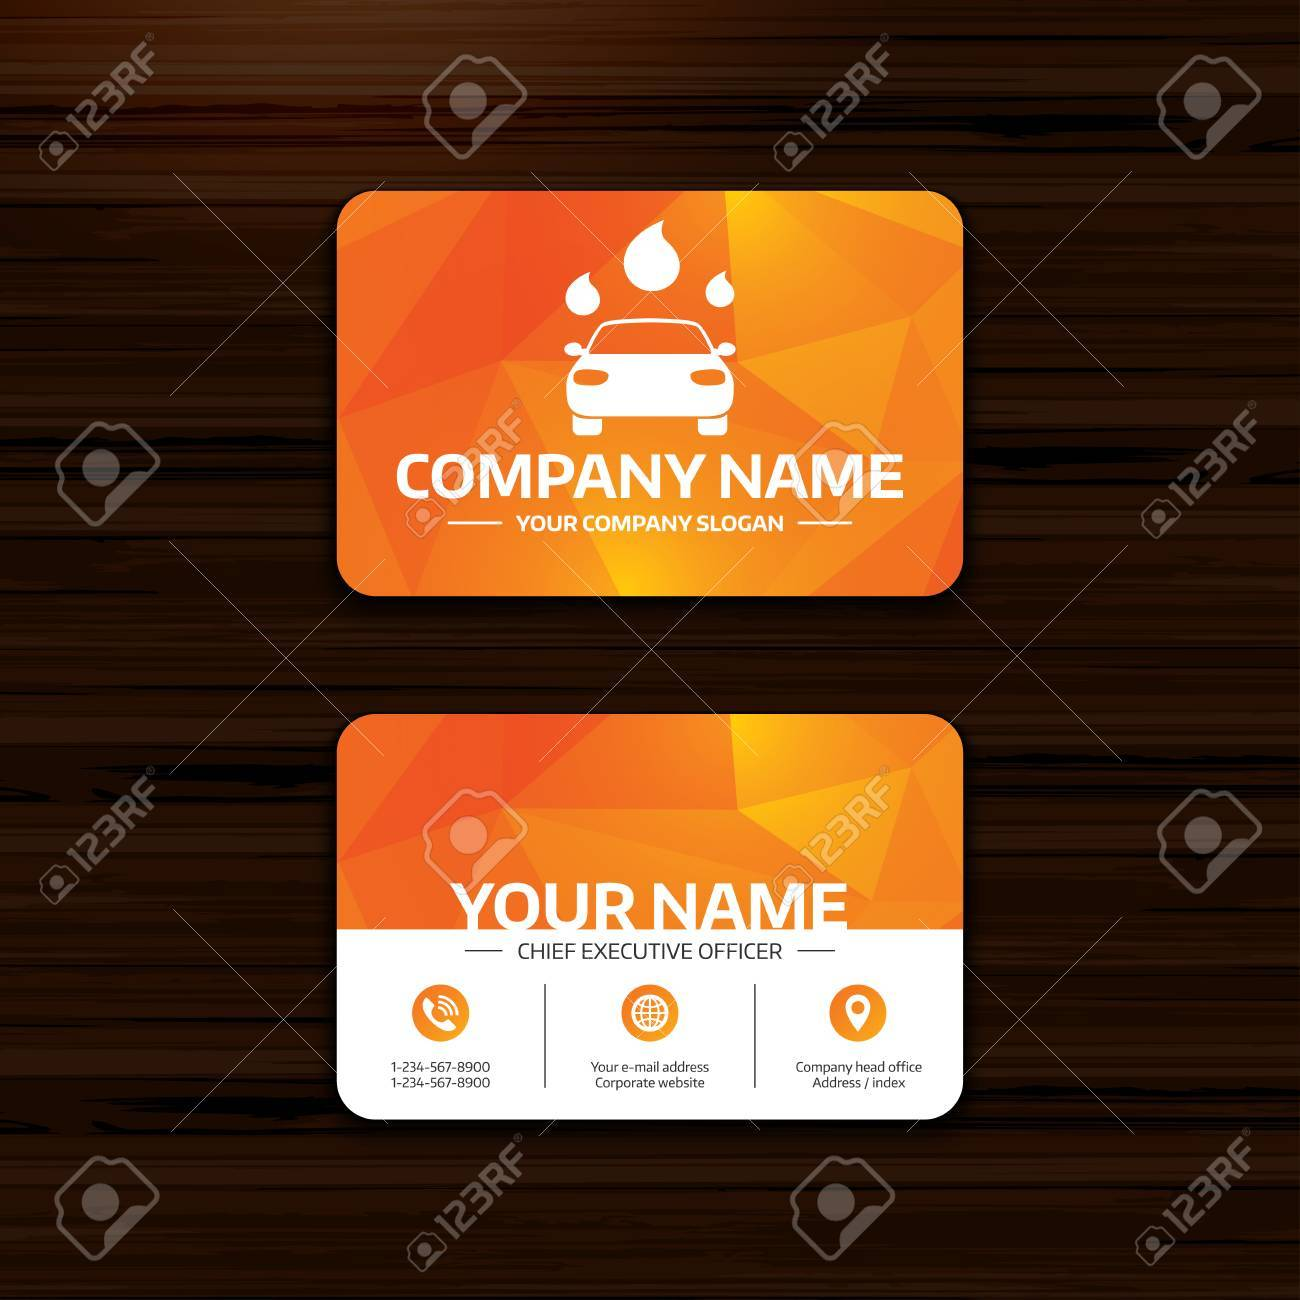 Business or visiting card template car wash icon automated business or visiting card template car wash icon automated teller carwash symbol water colourmoves